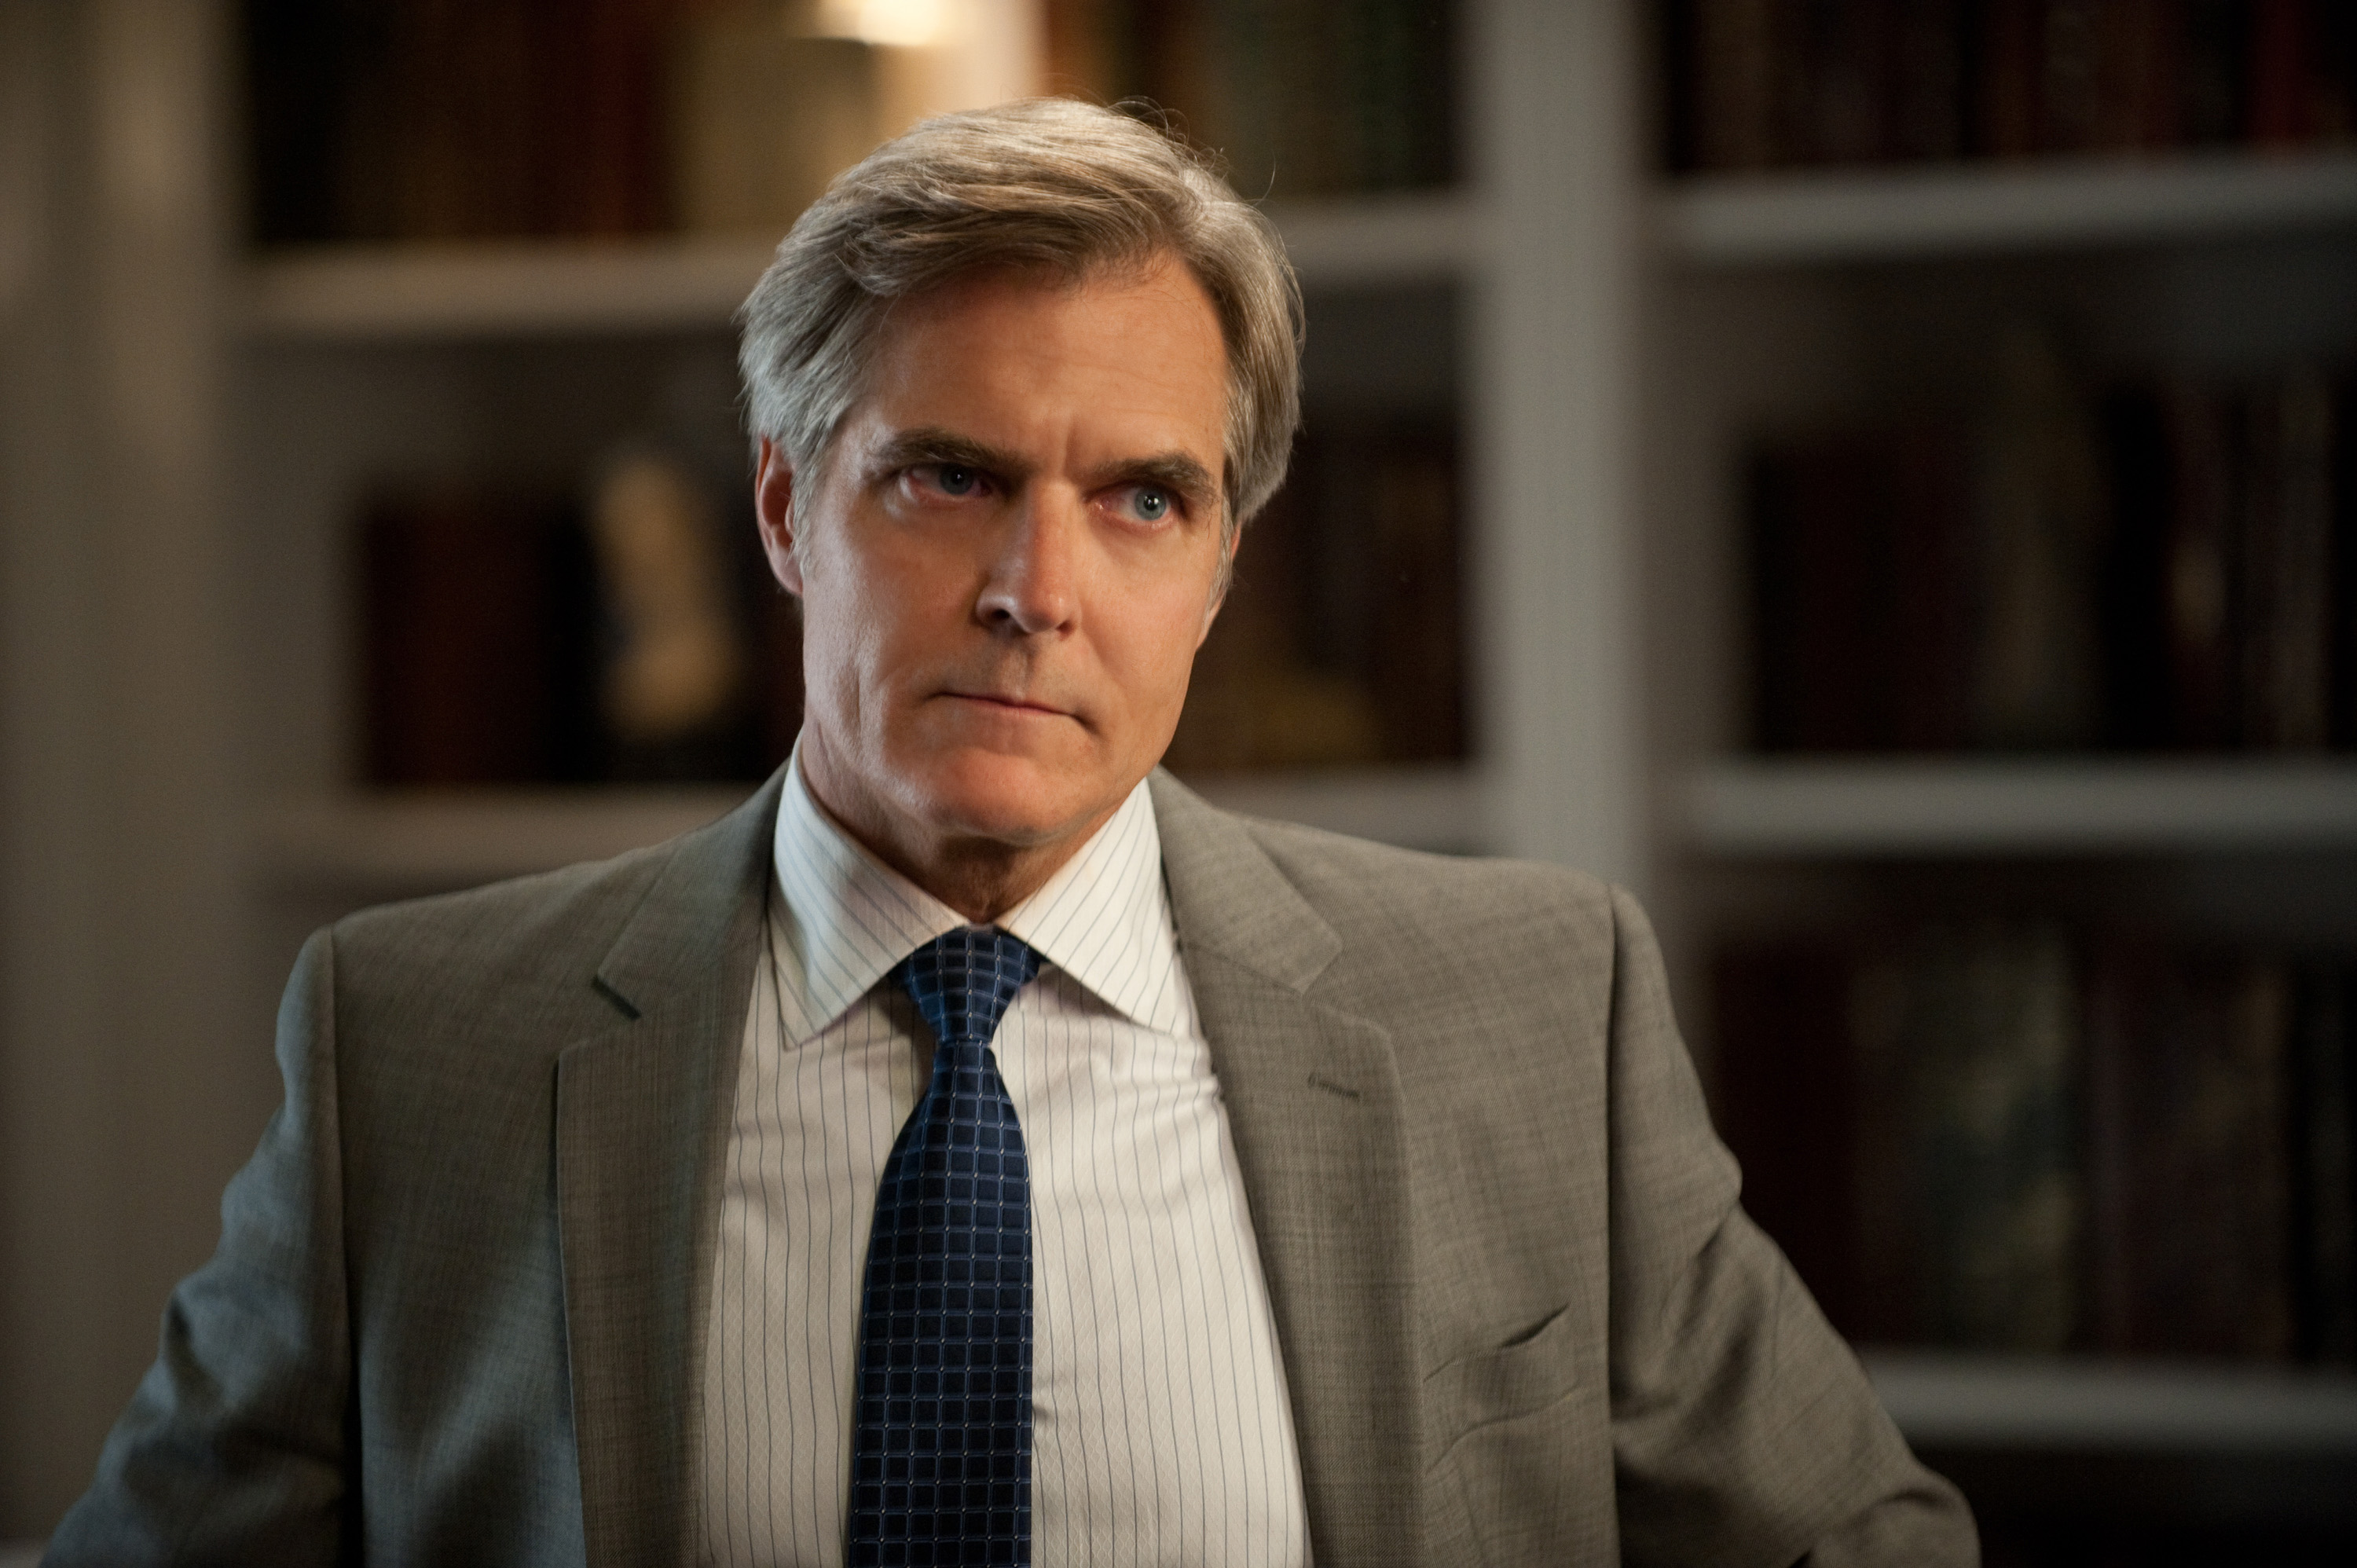 henry czerny movies and tv shows